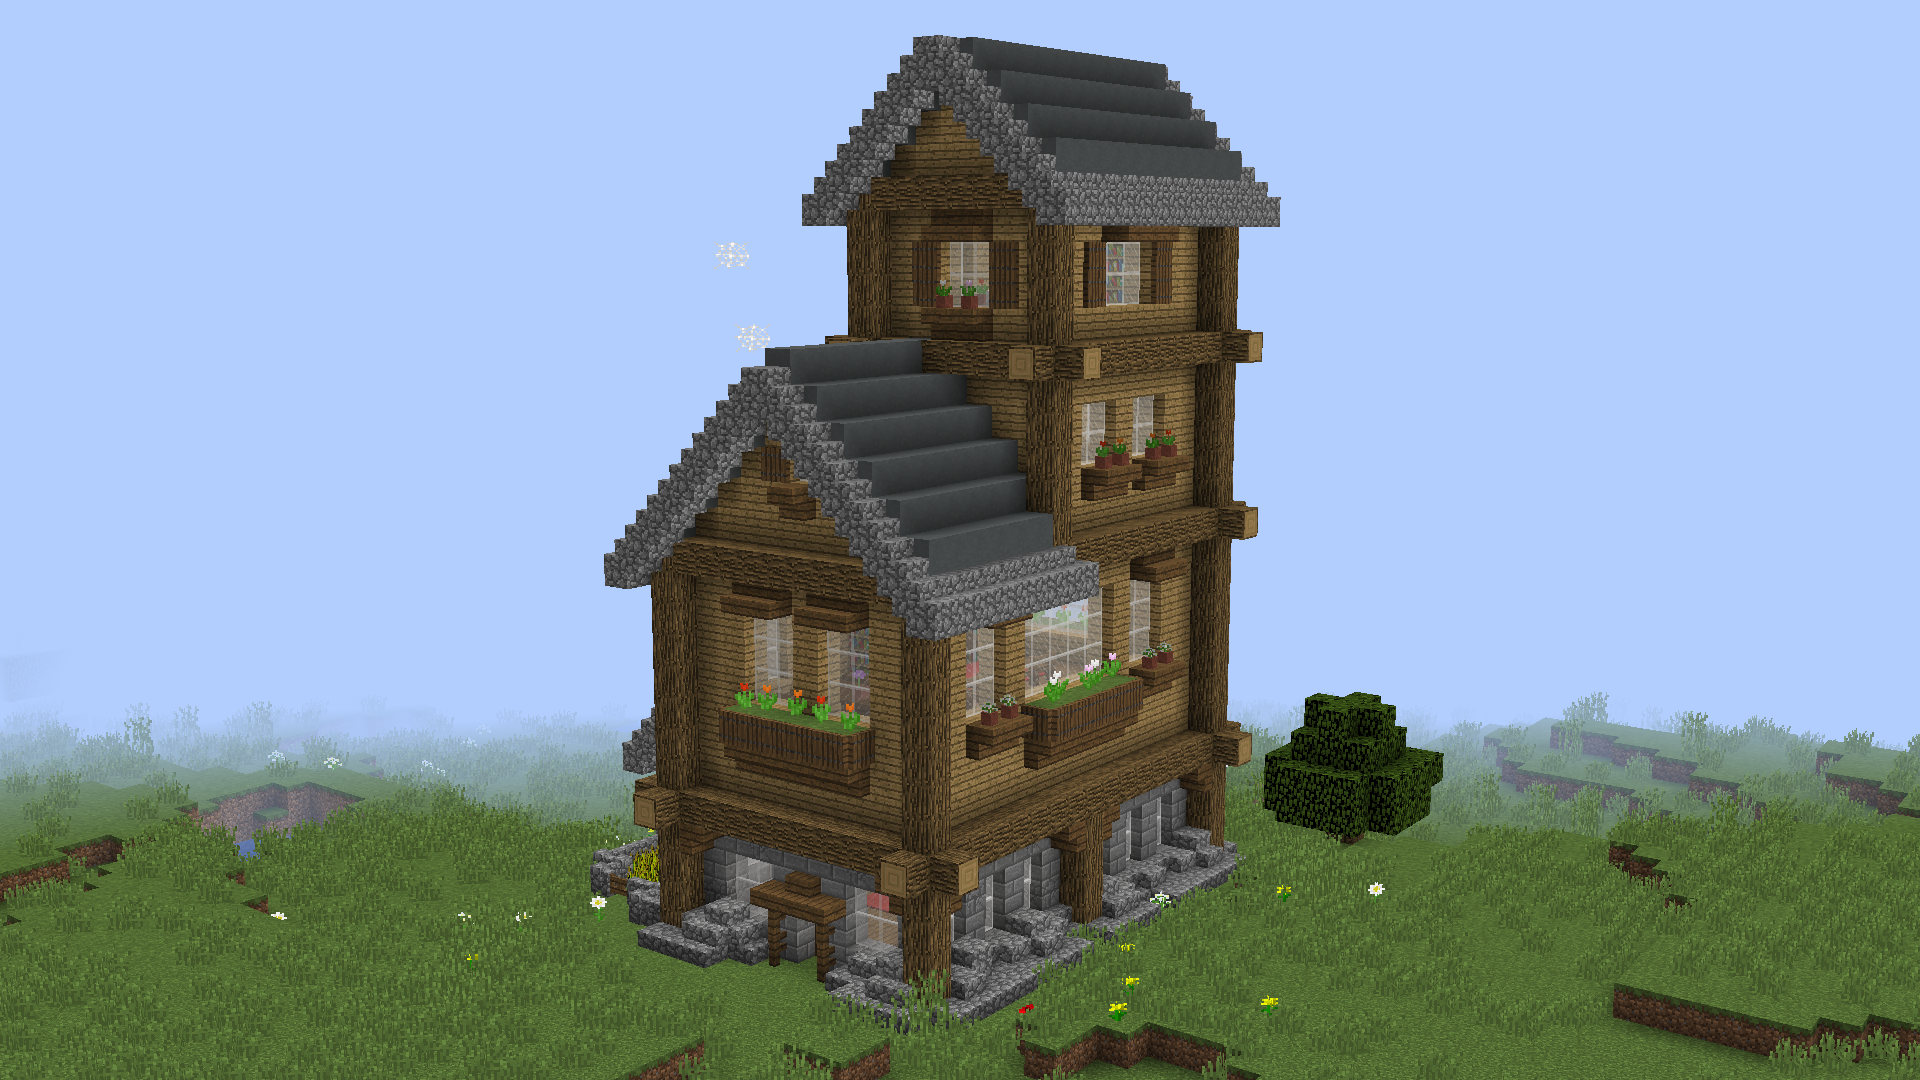 Download Small Rustic House 3 Mb Map For Minecraft